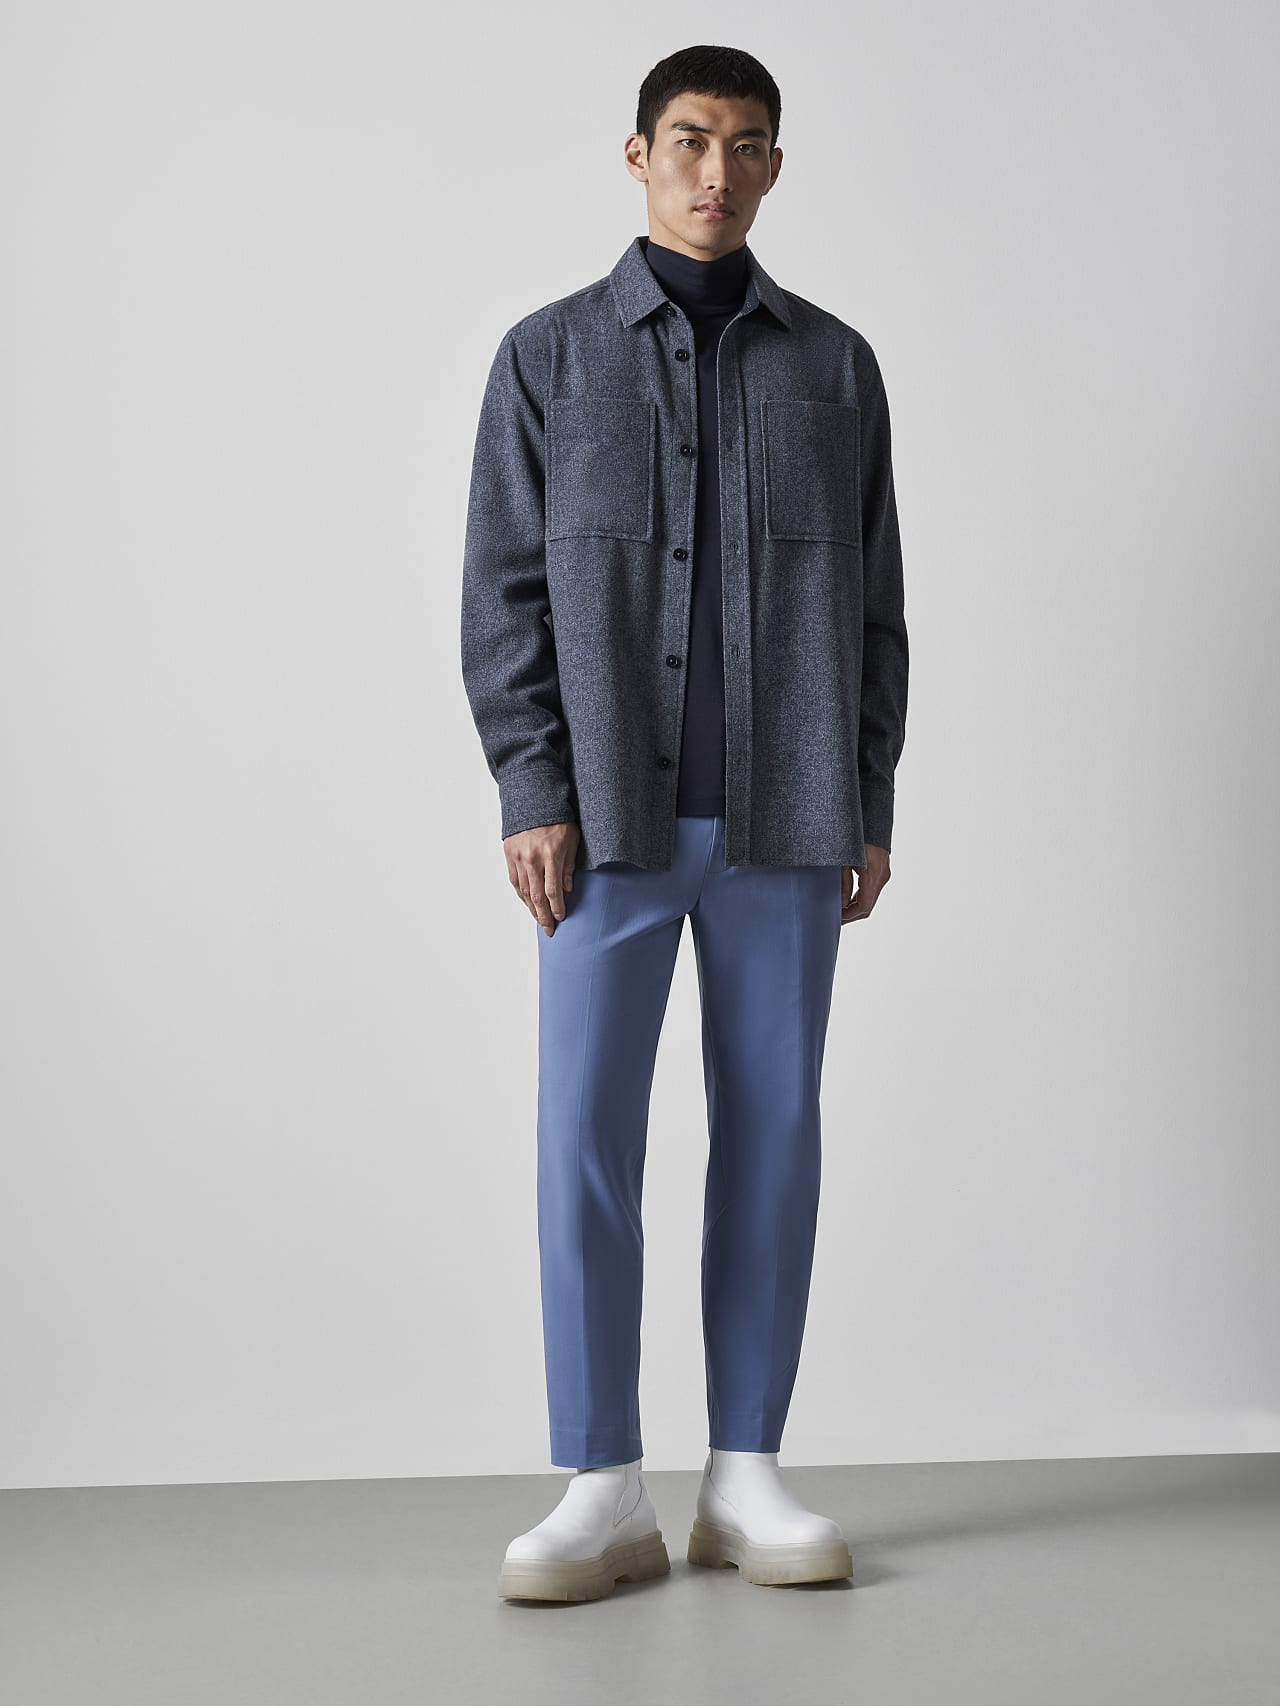 WOVER V1.Y5.02 Wool Over-Shirt navy Front Alpha Tauri